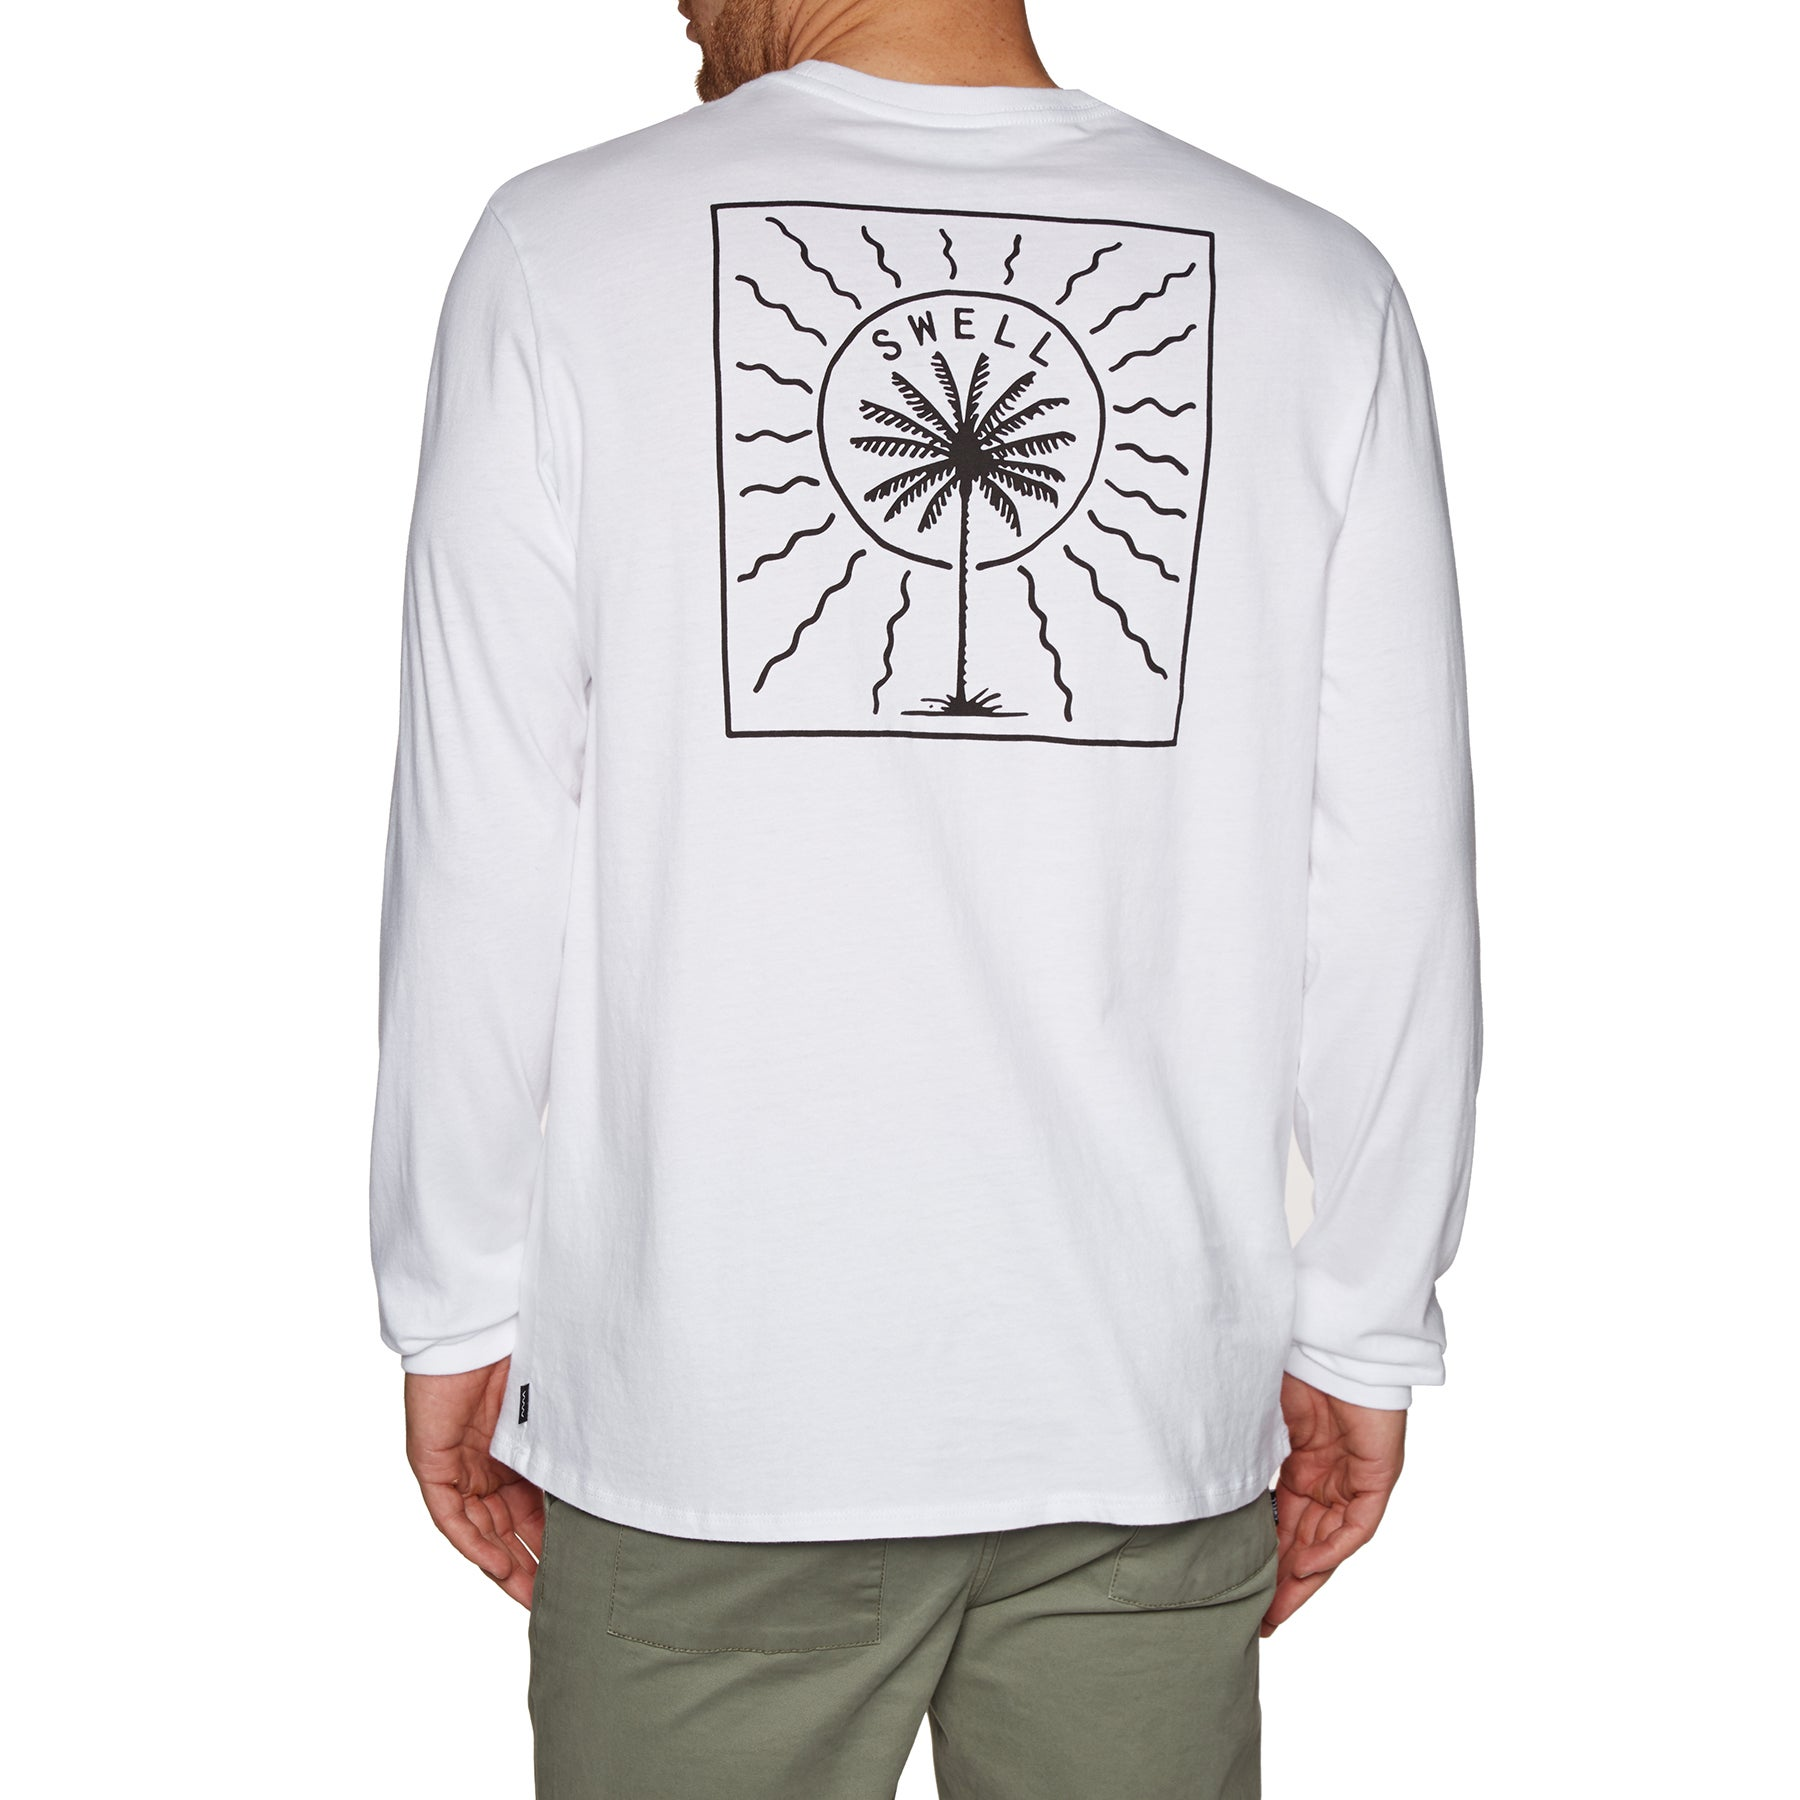 SWELL Palms Long Sleeve T-Shirt - White